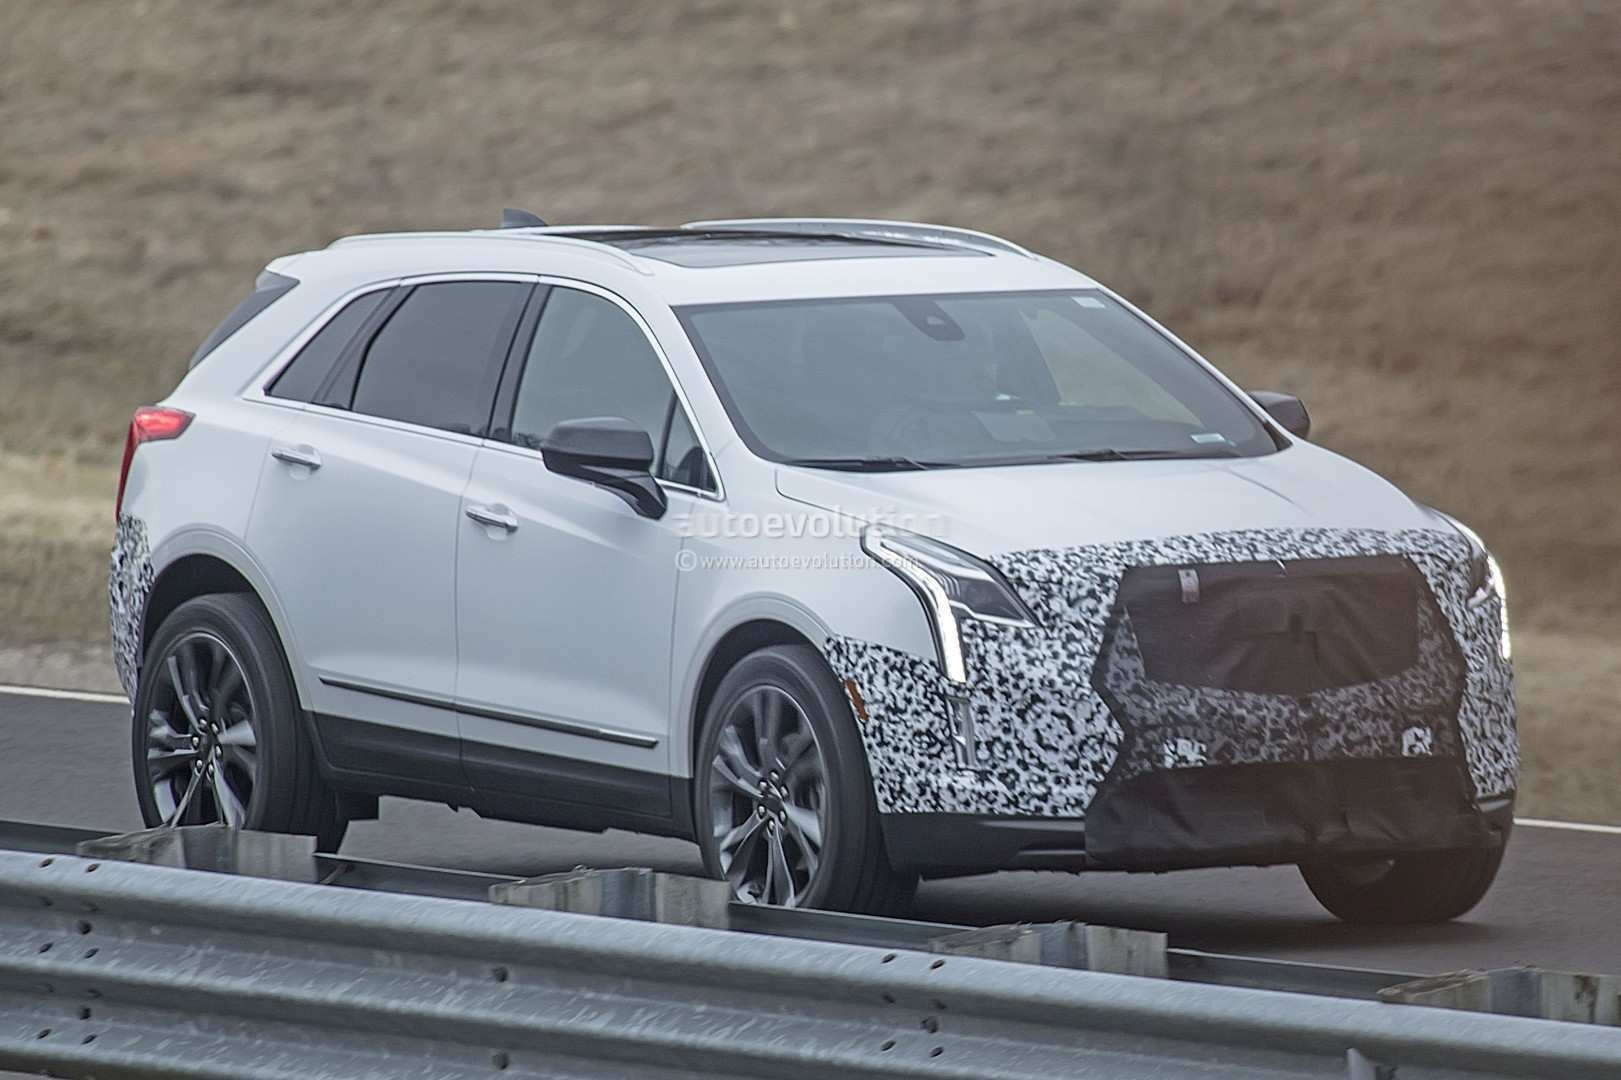 18 Great Spy Shots 2020 Cadillac Xt5 Concept for Spy Shots 2020 Cadillac Xt5